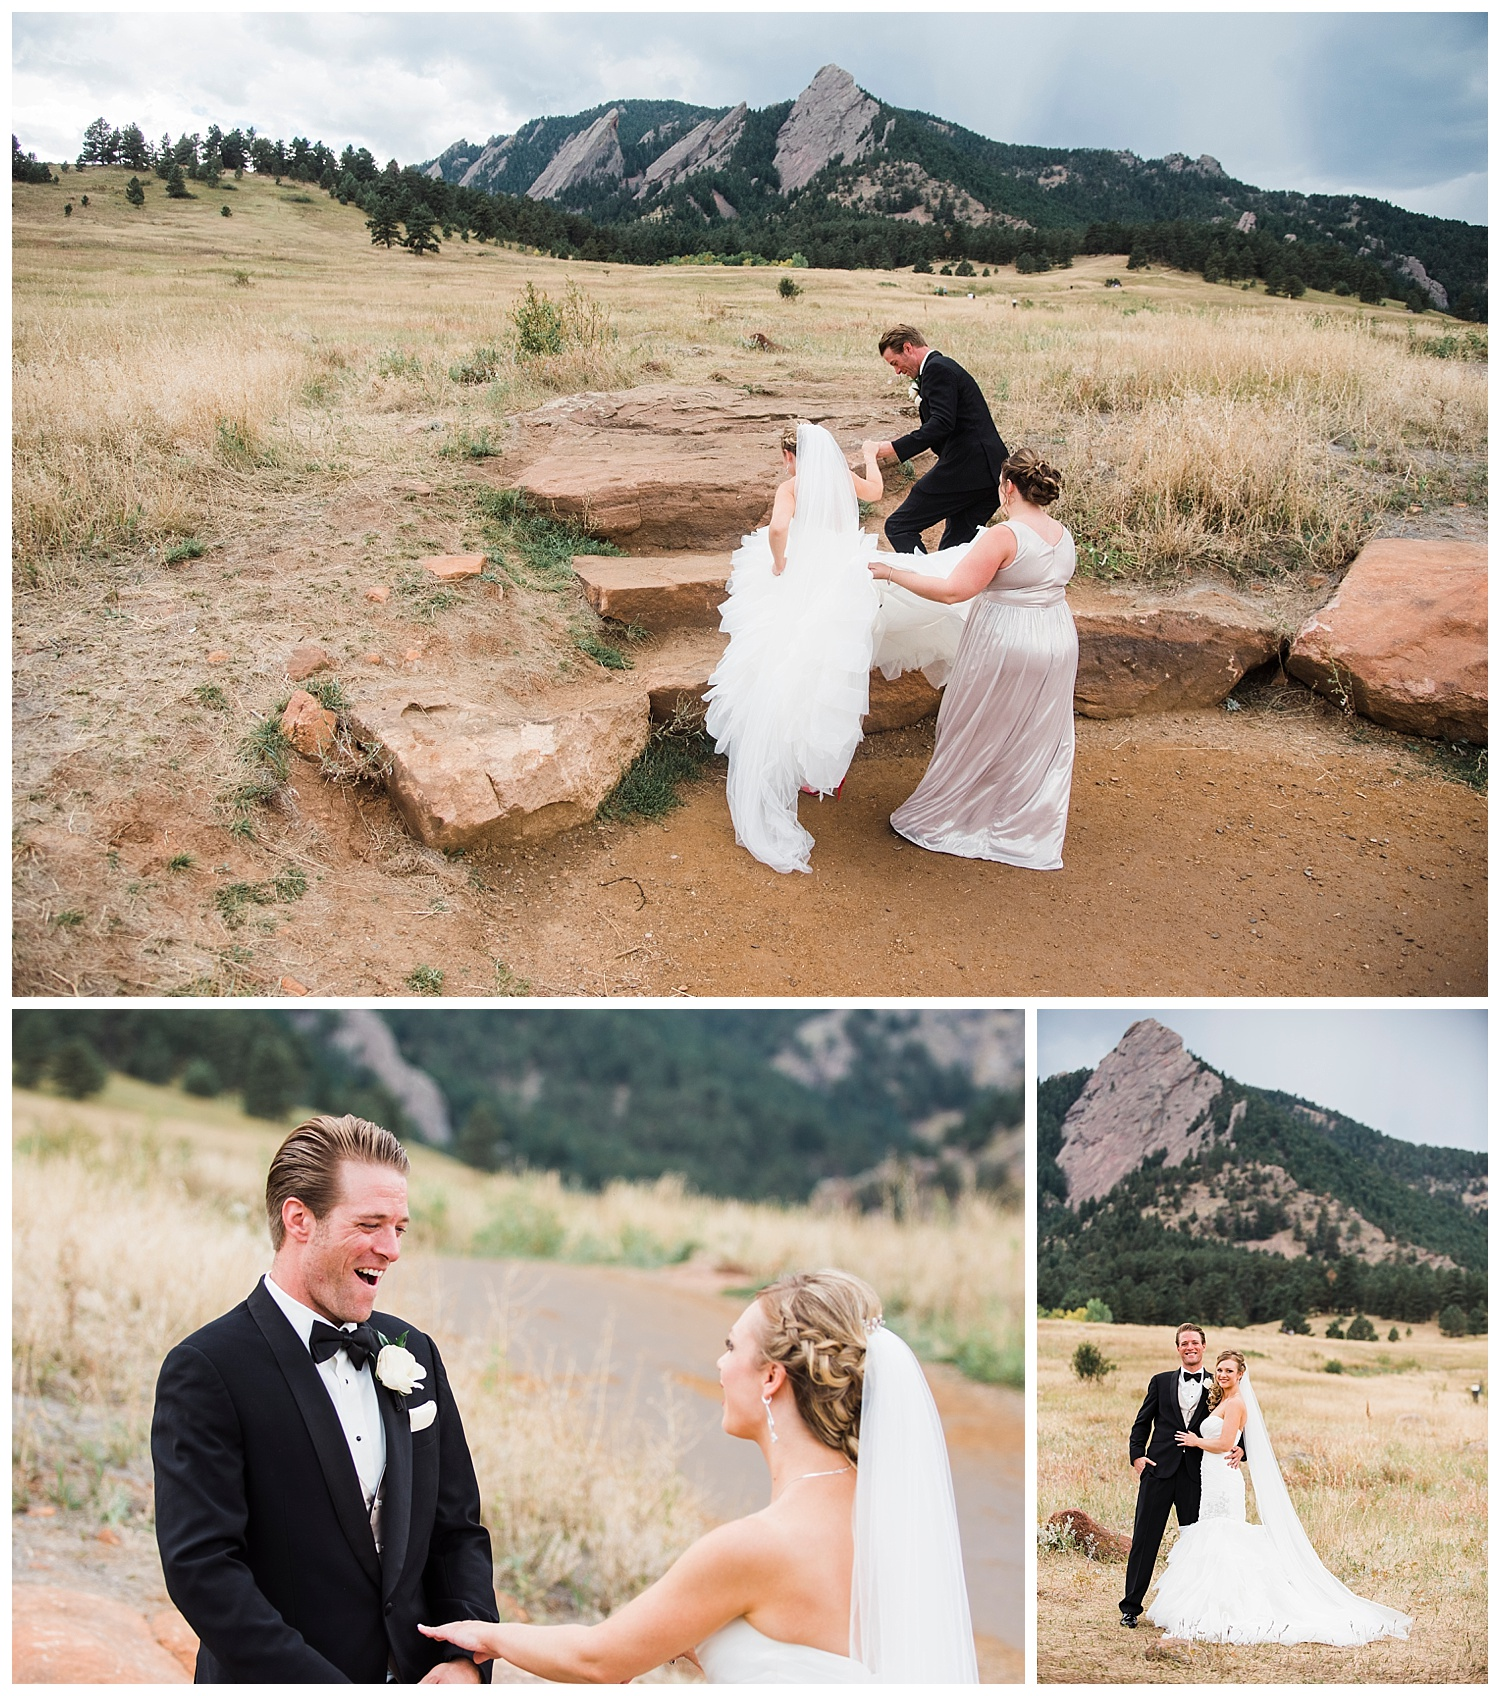 Wedgewood_Boulder_Creek_Wedding_Venue_Colorado_Photographer_Apollo_Fields_008.jpg